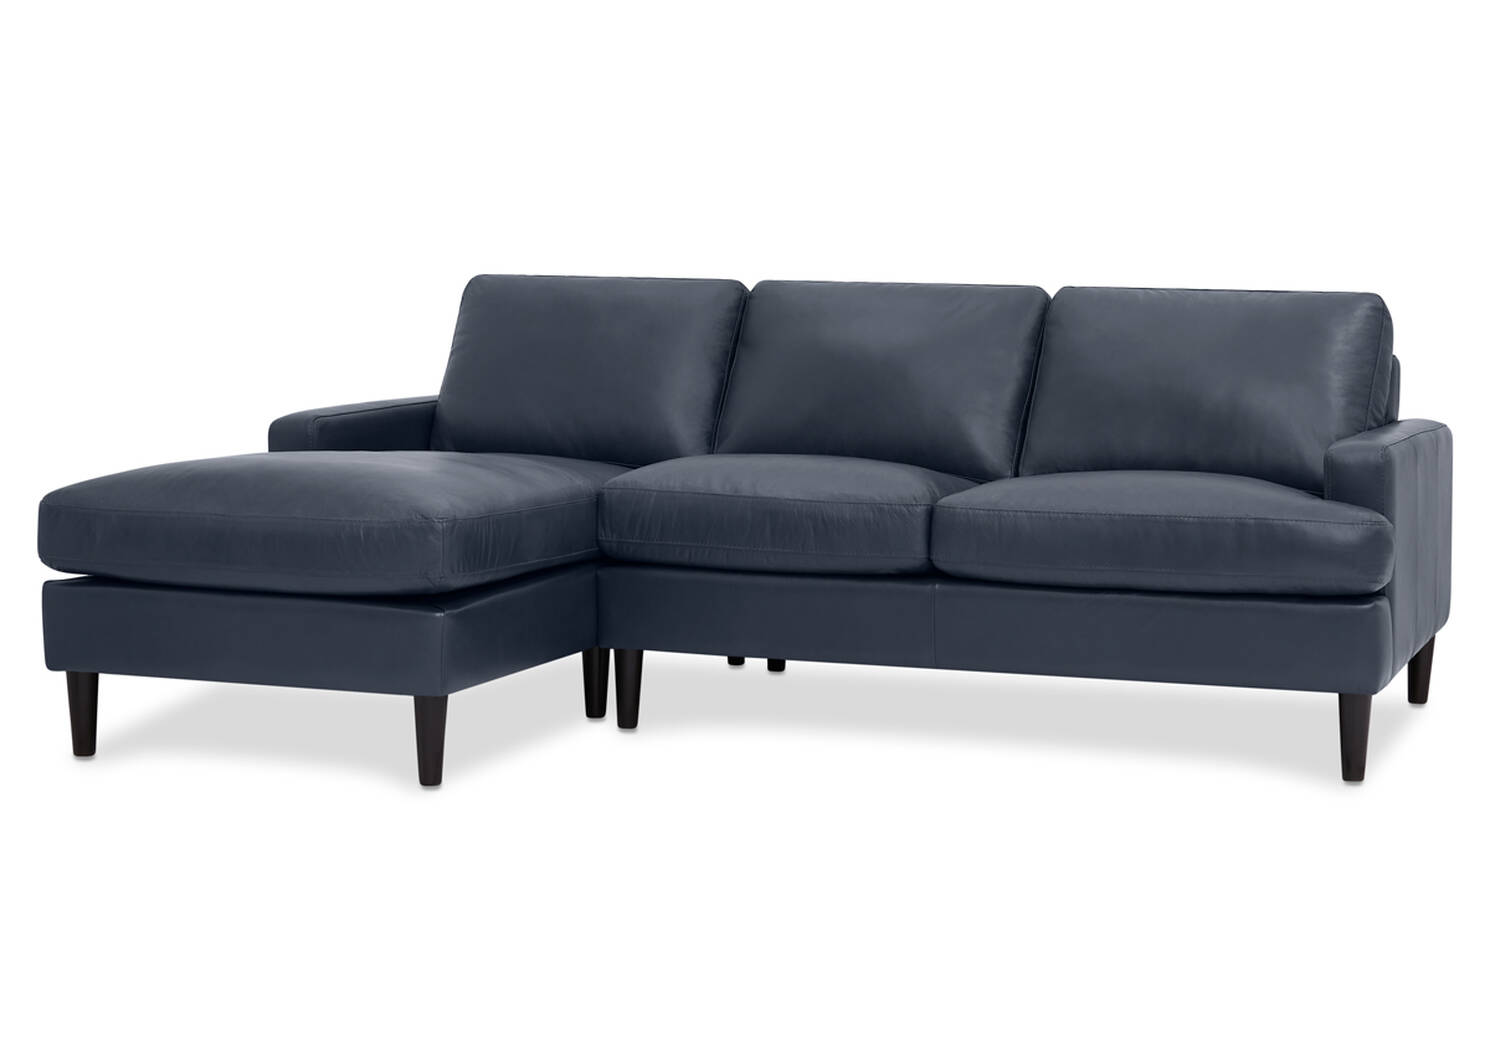 Savoy Custom Leather Sofa Chaise